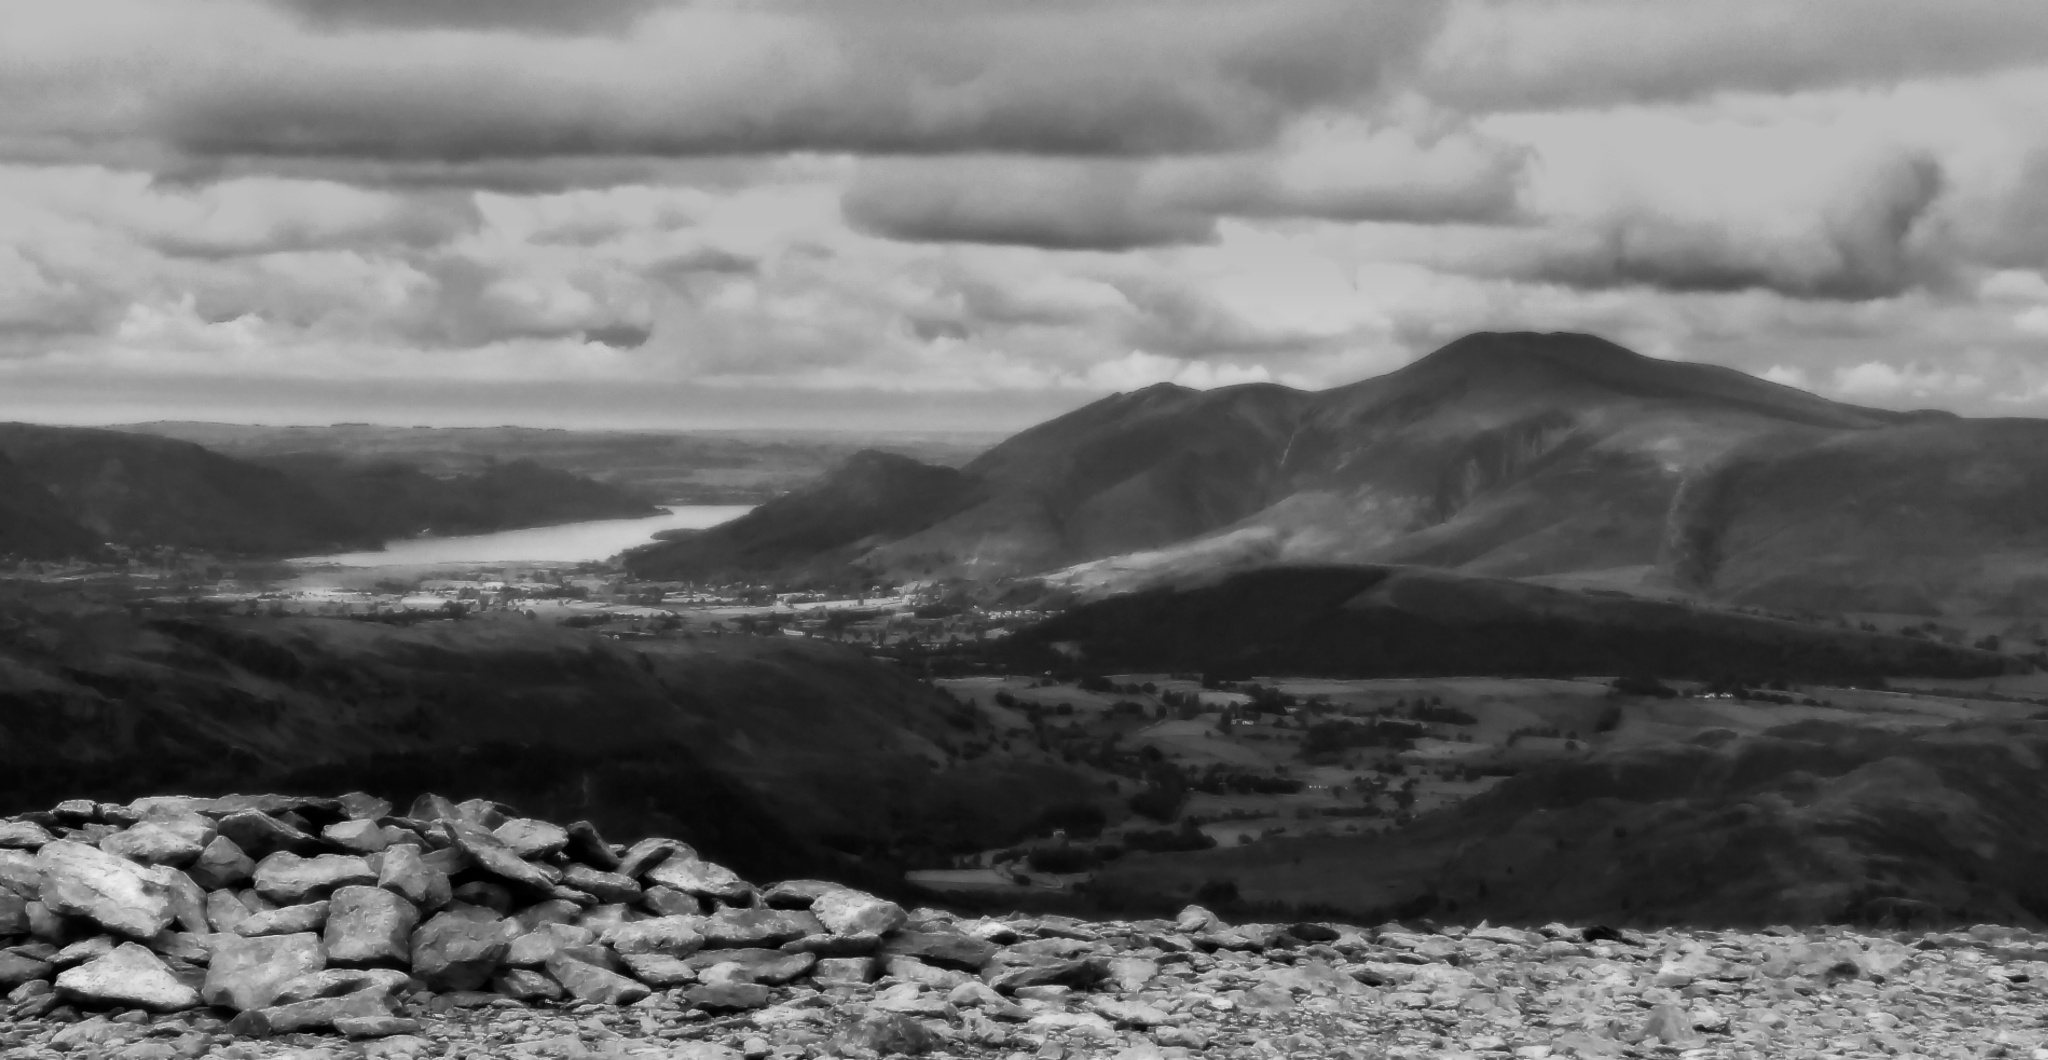 Skiddaw over Bassenthwaite Lake by Charlie Rose